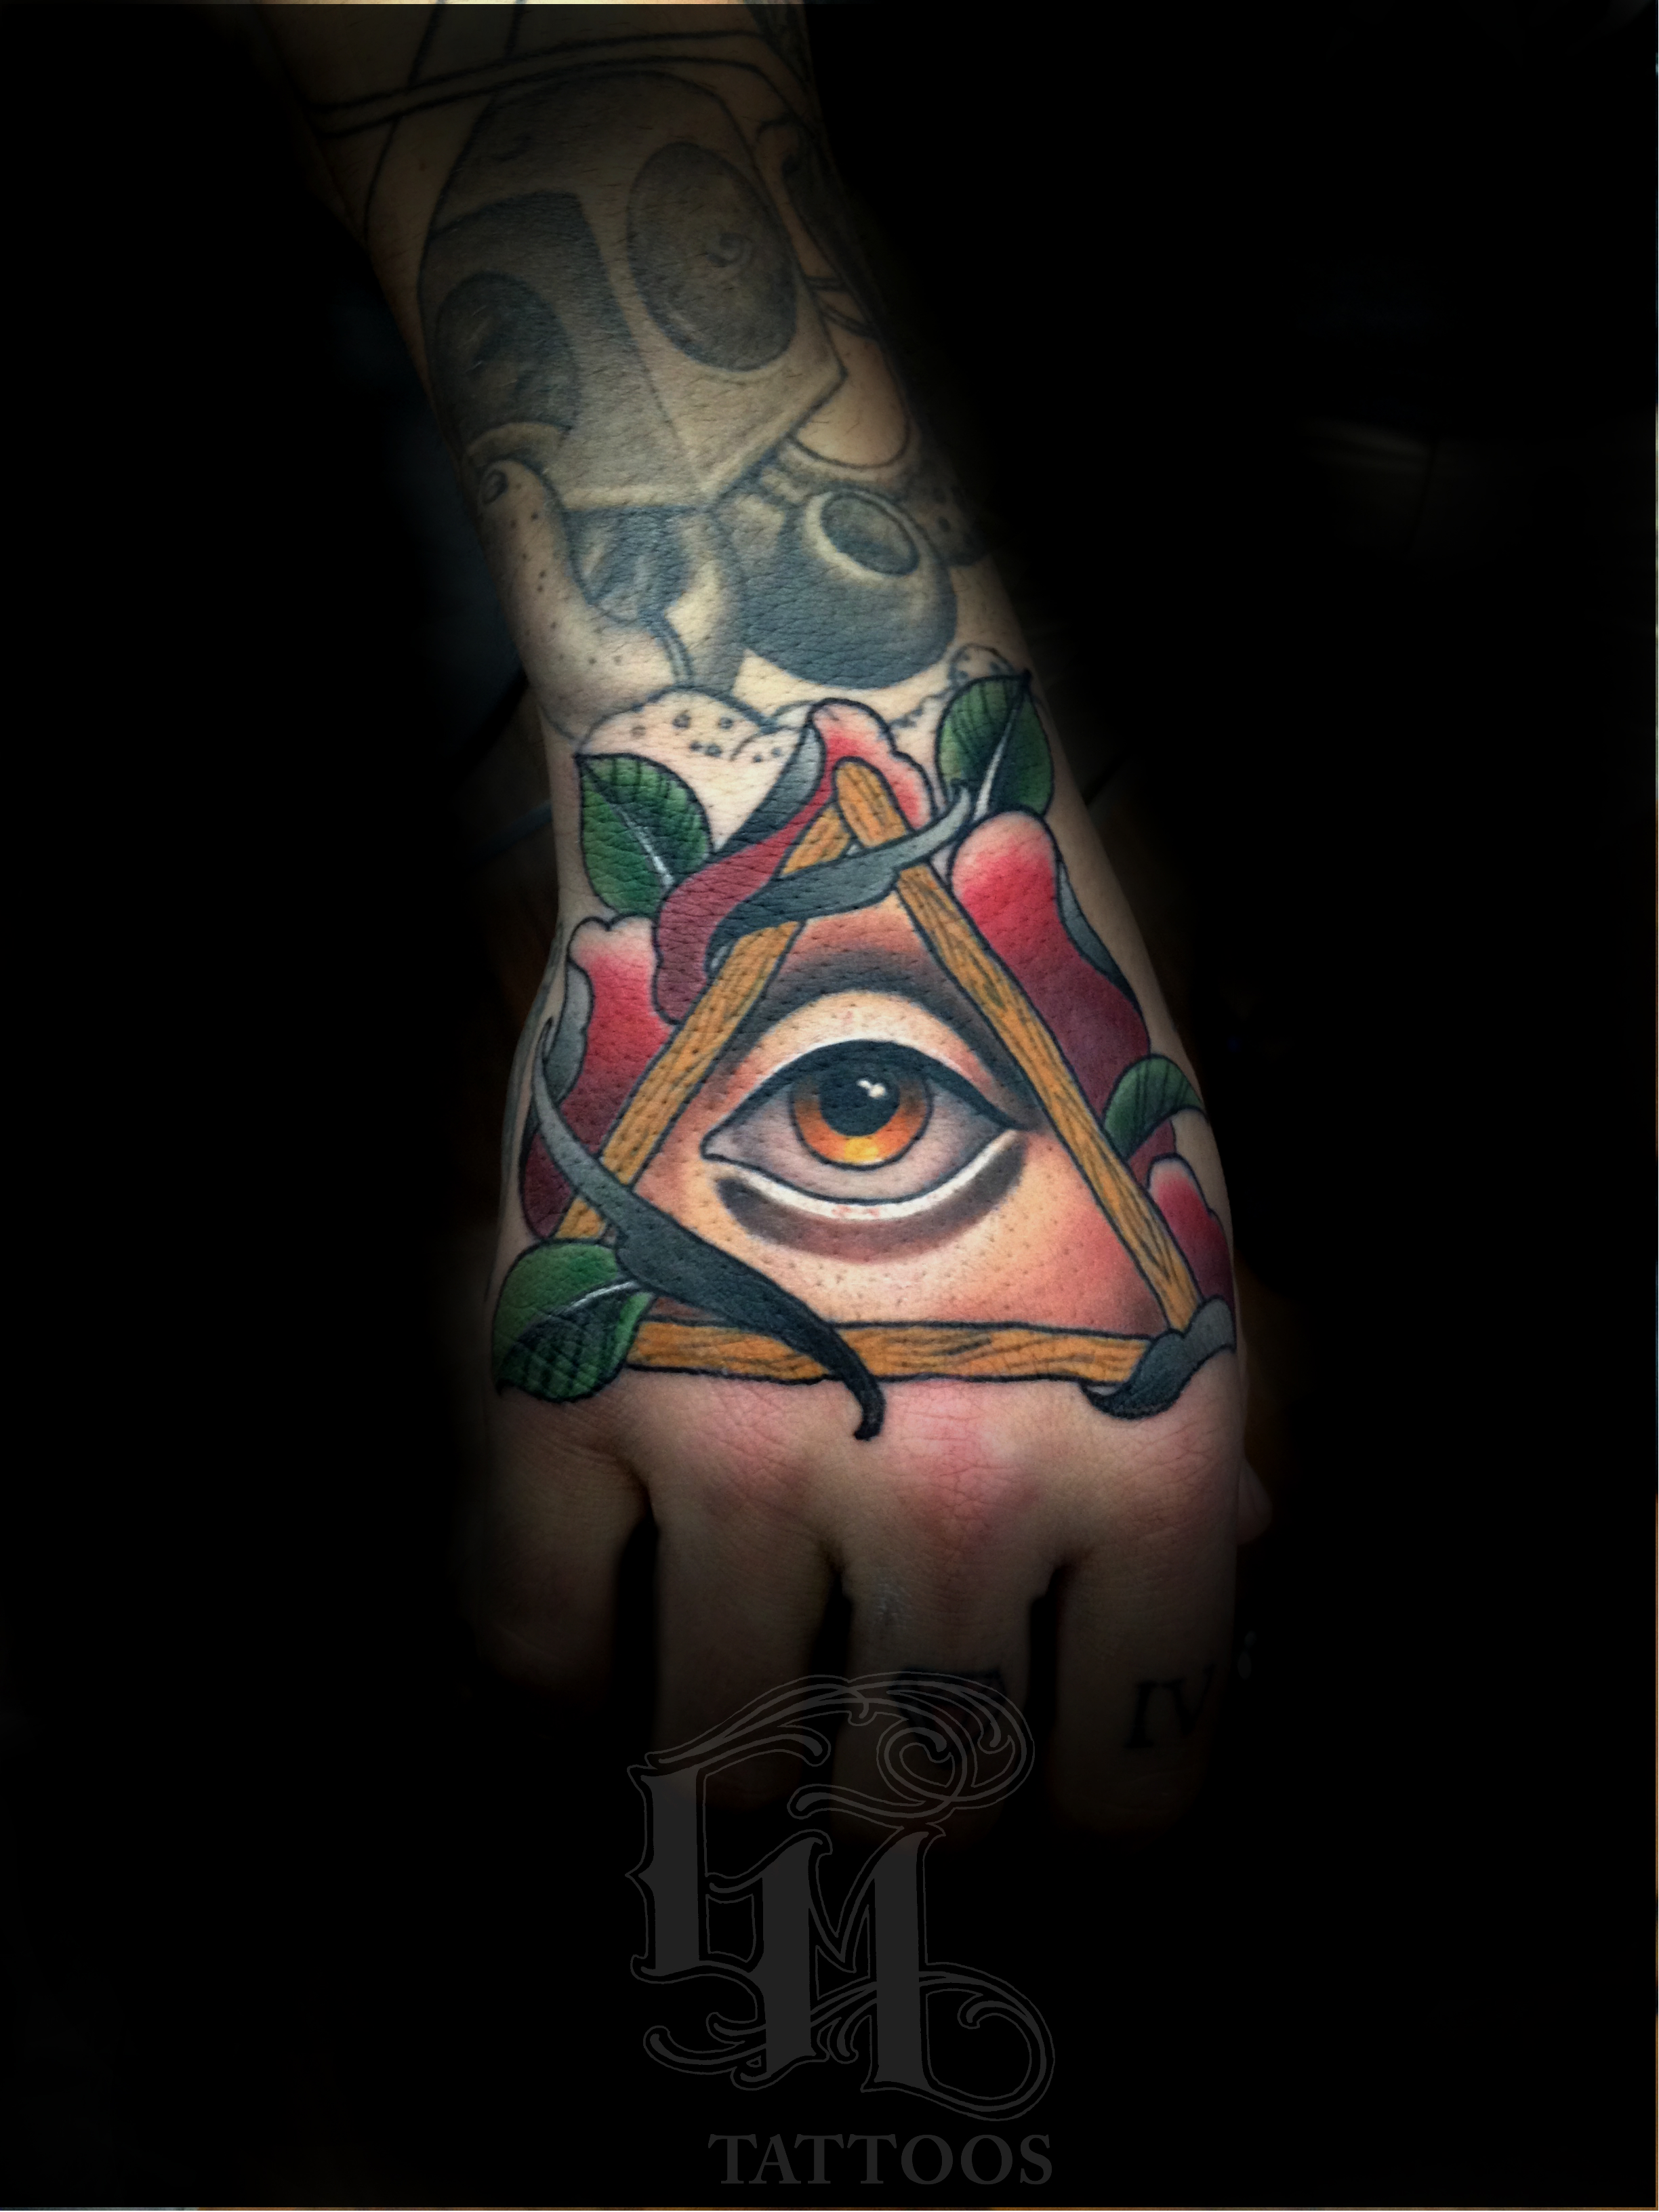 Graham mowers certified artist for Eye tattoo art